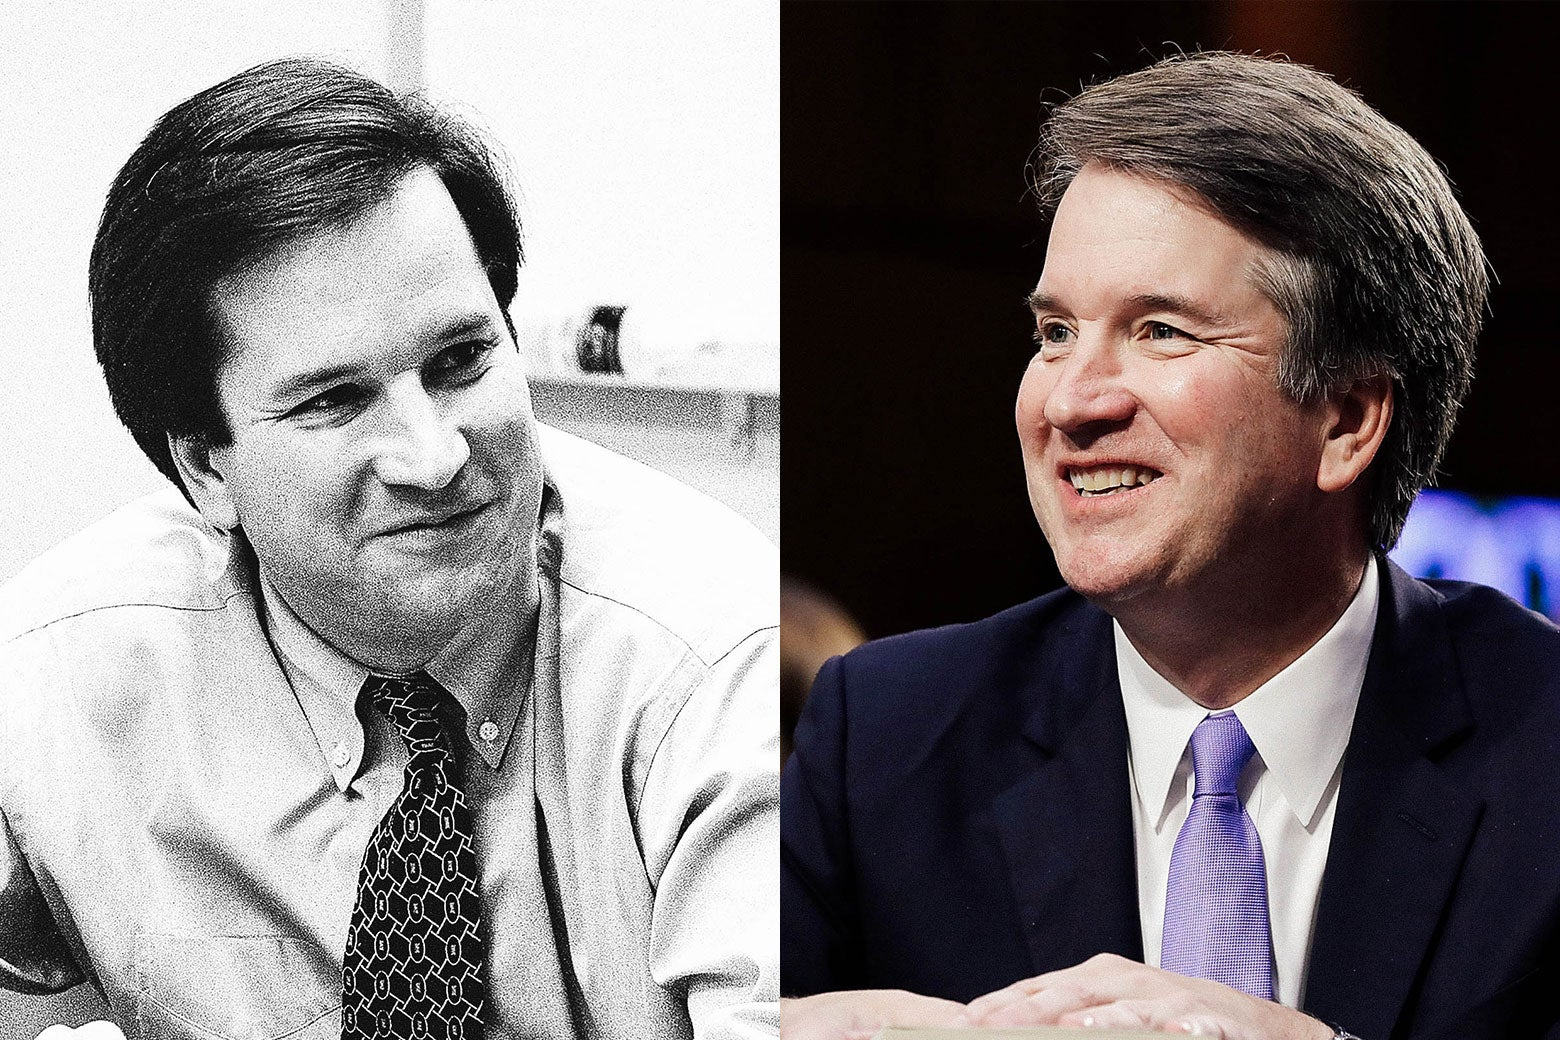 Kavanaugh photographed in 1996 and 2018.